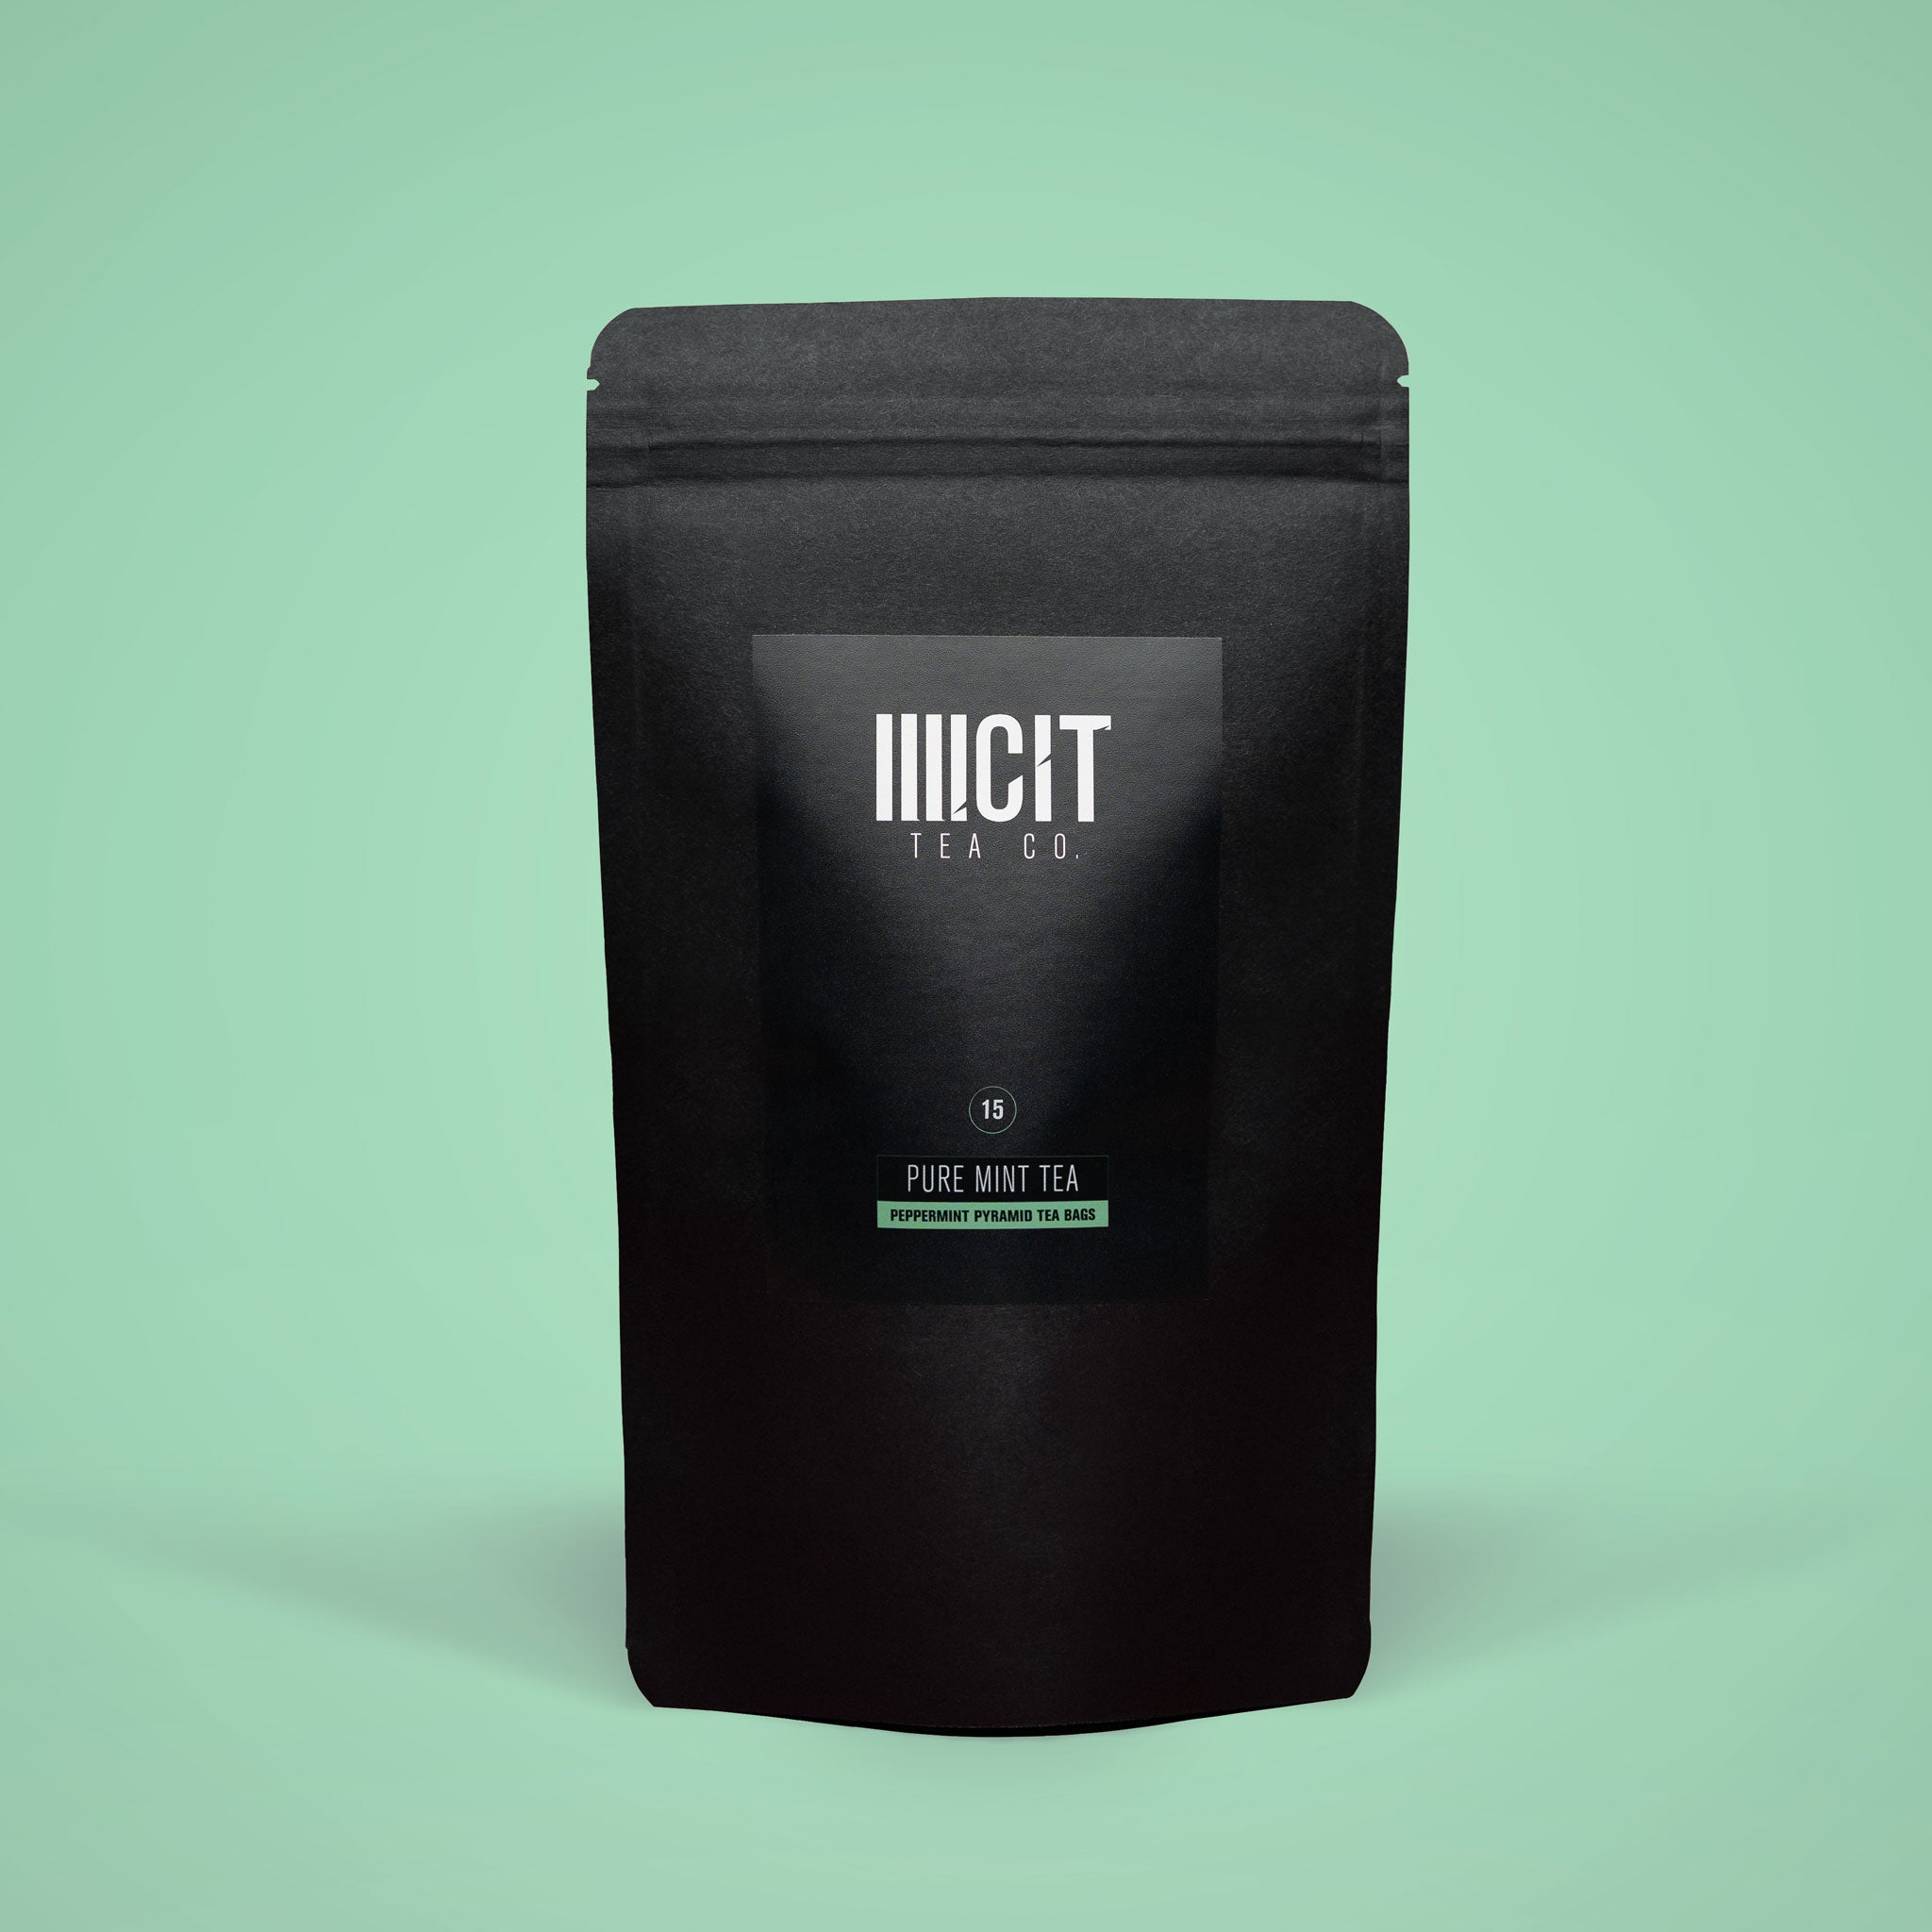 Illicit Tea Co. |  Pure Mint Tea